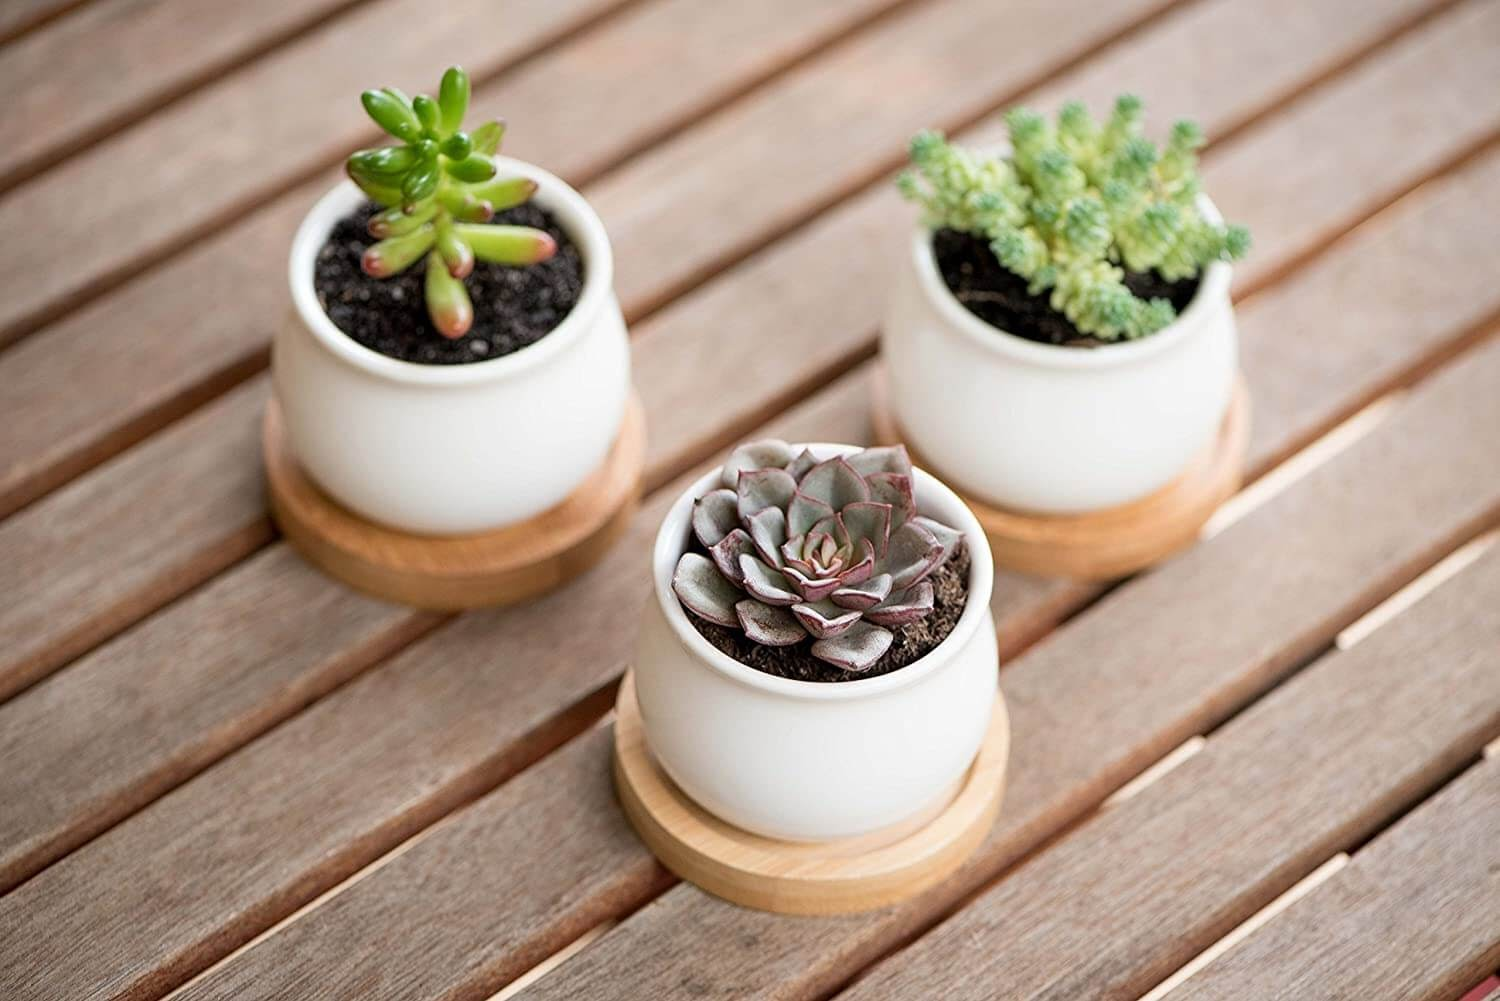 Little plants in tiny pots